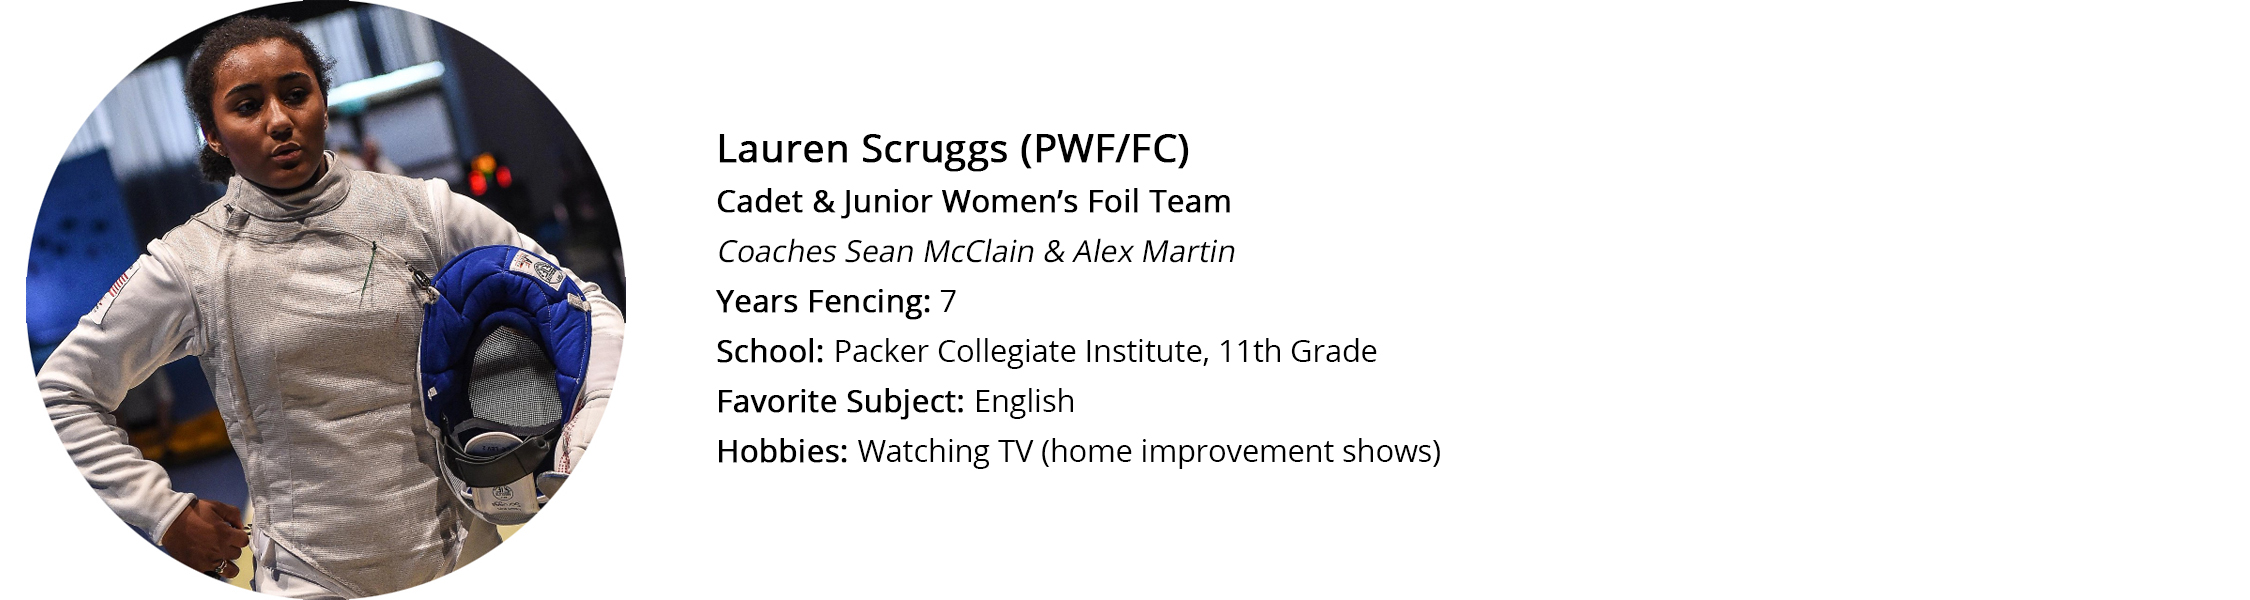 Scruggs Profile